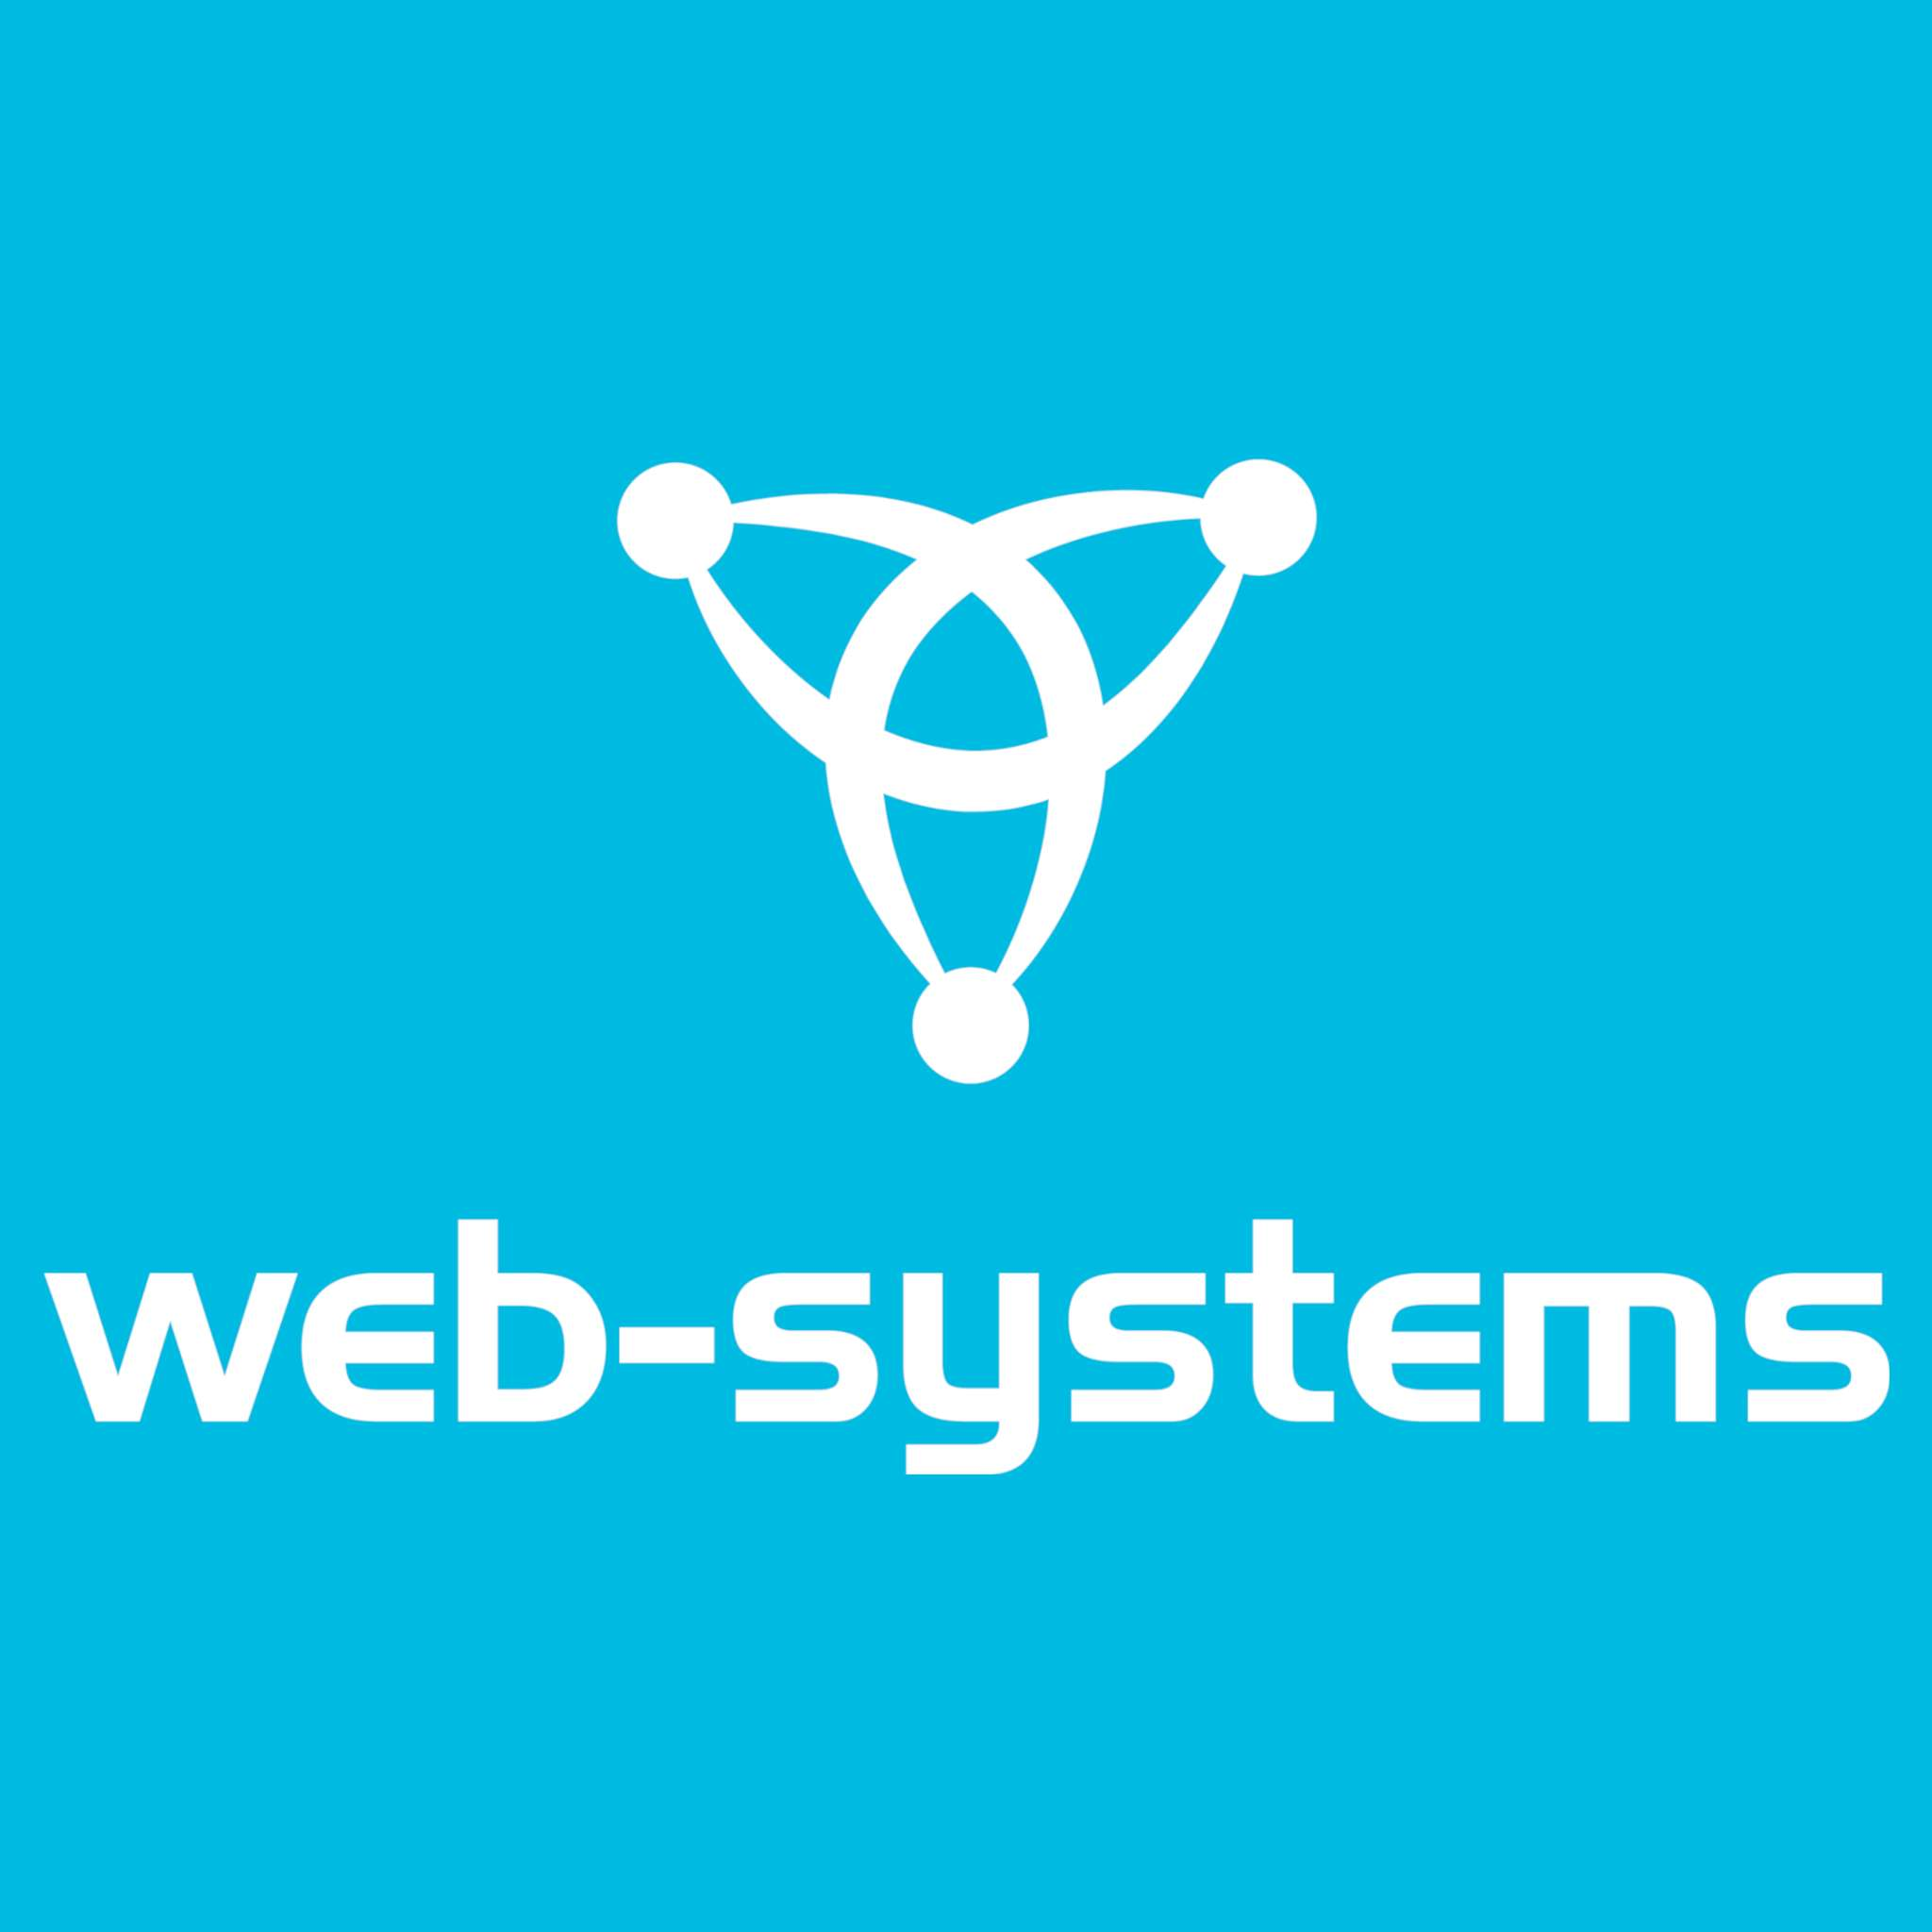 Web-systems